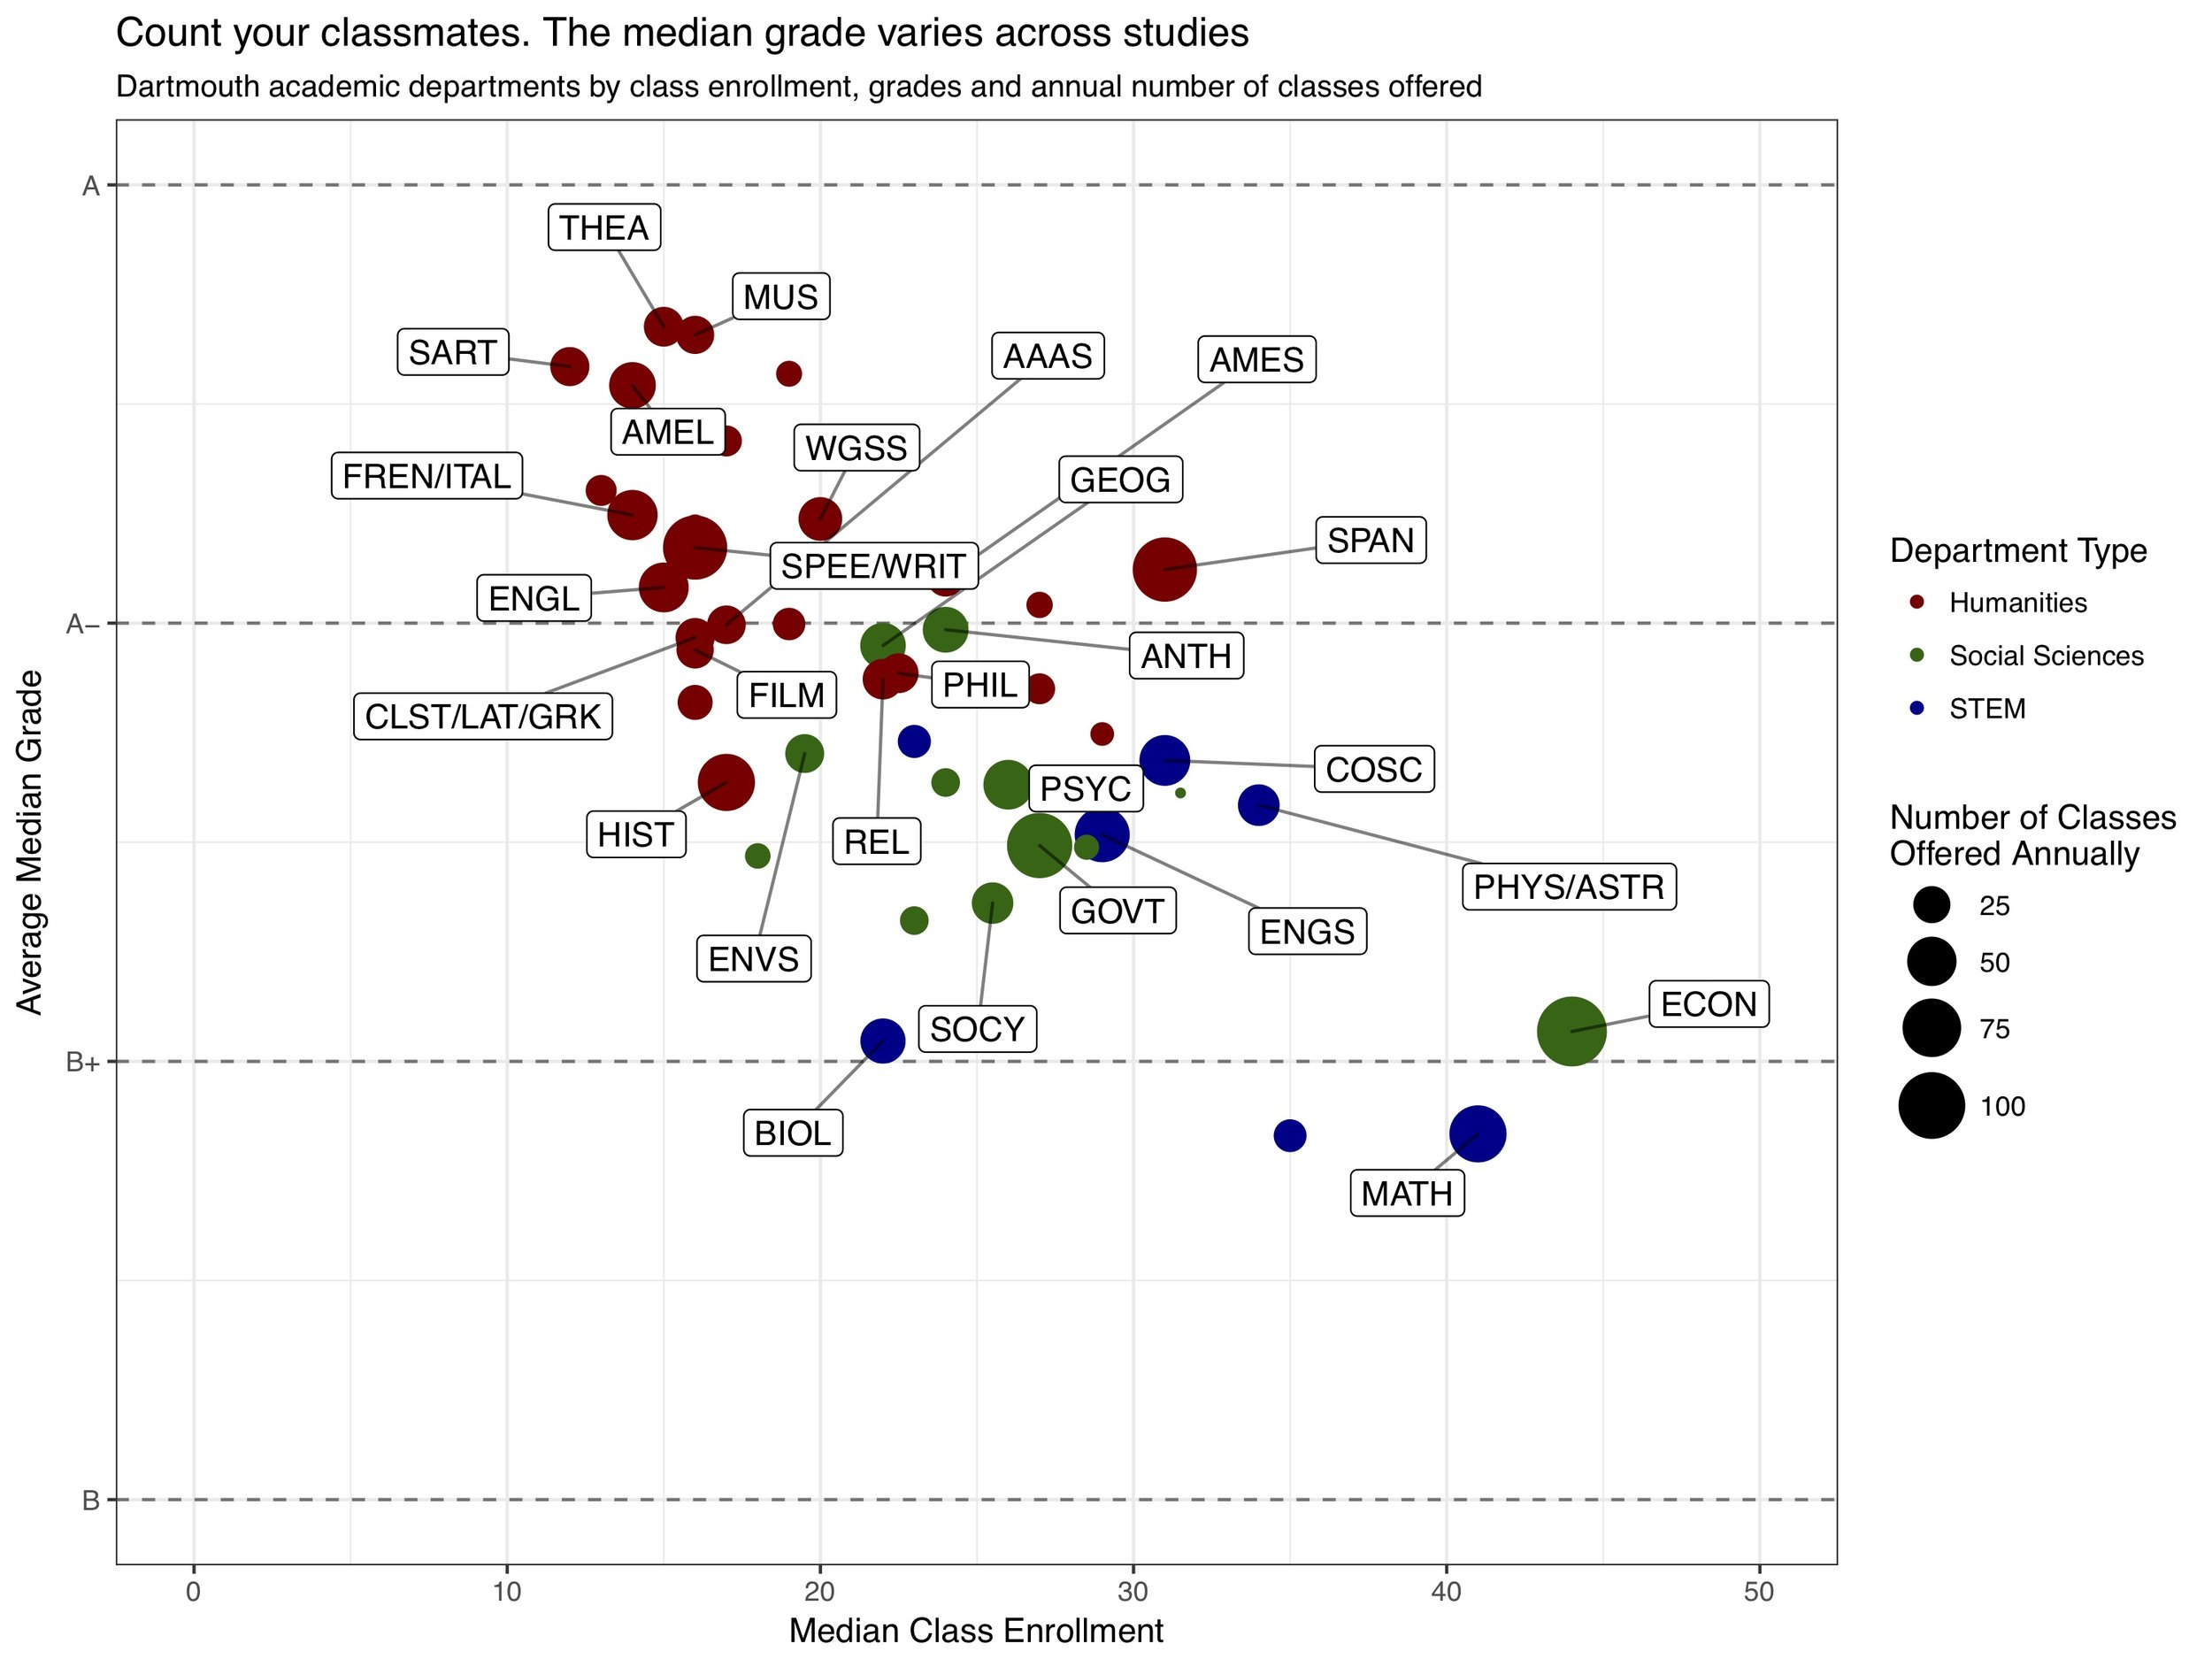 """Median Grades by Academic Department - Some academic departments give out lower grades than others. Data was scraped from the Dartmouth registrar's website using OutWit Hub and analyzed in R. (Project from Quantitative Social Science 17 """"Data Visualization"""")"""